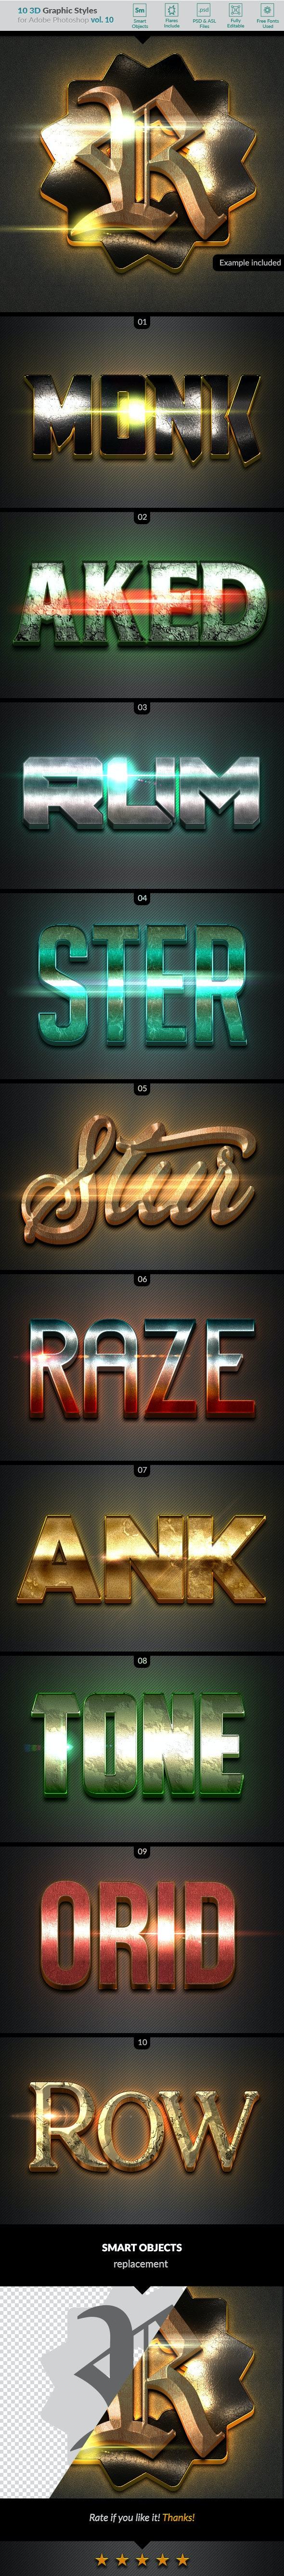 10 3D Styles vol. 10 - Text Effects Styles